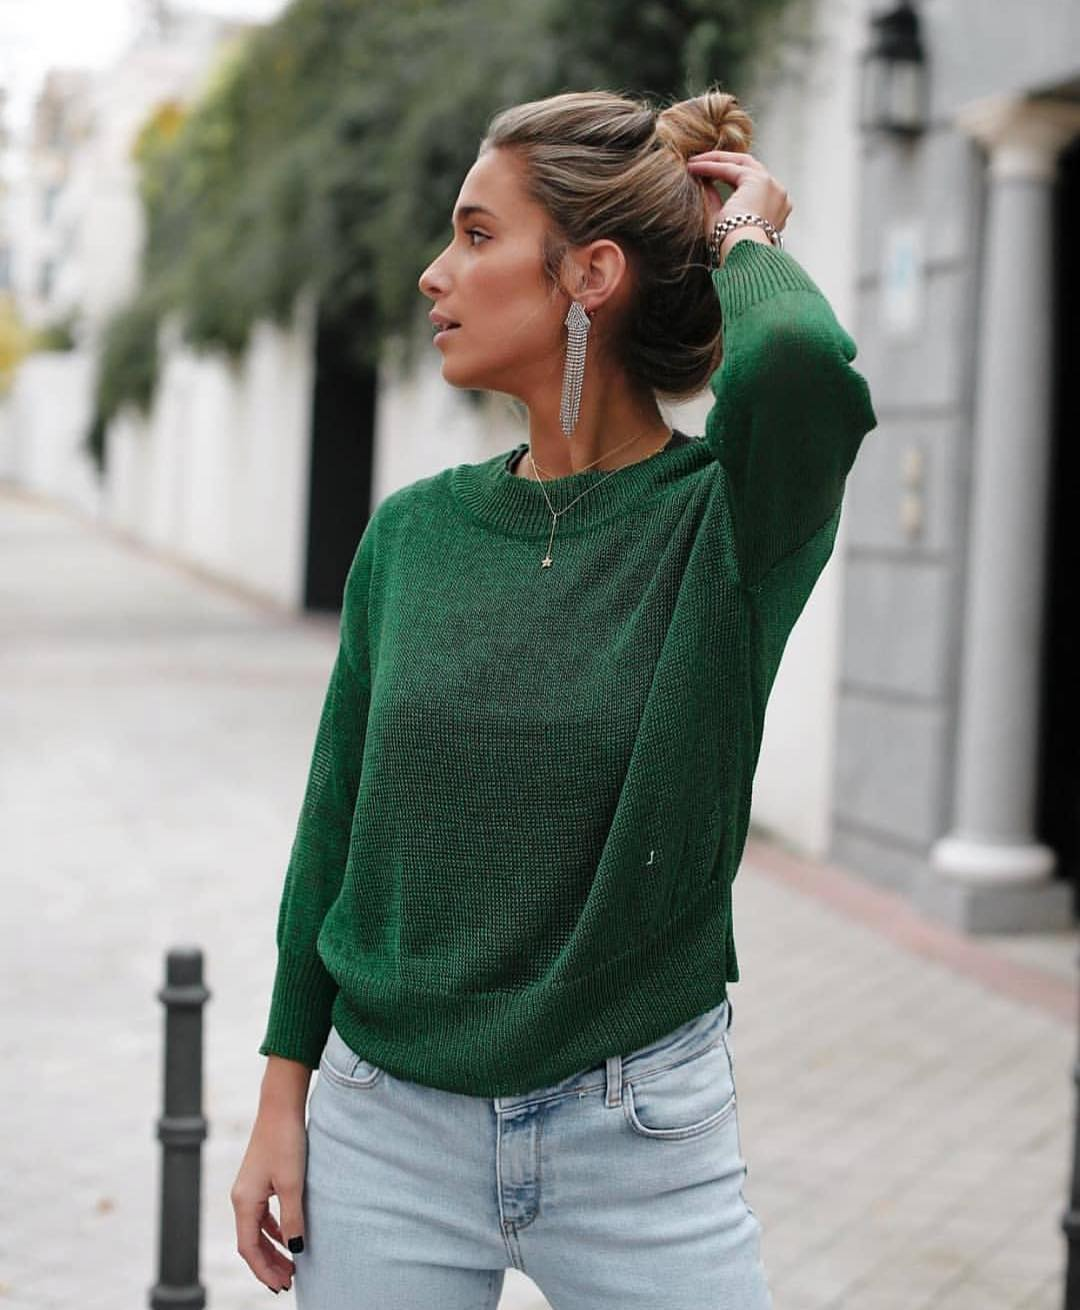 Green Sweater With Classic Jeans For Day Walk In The Town This Spring 2019